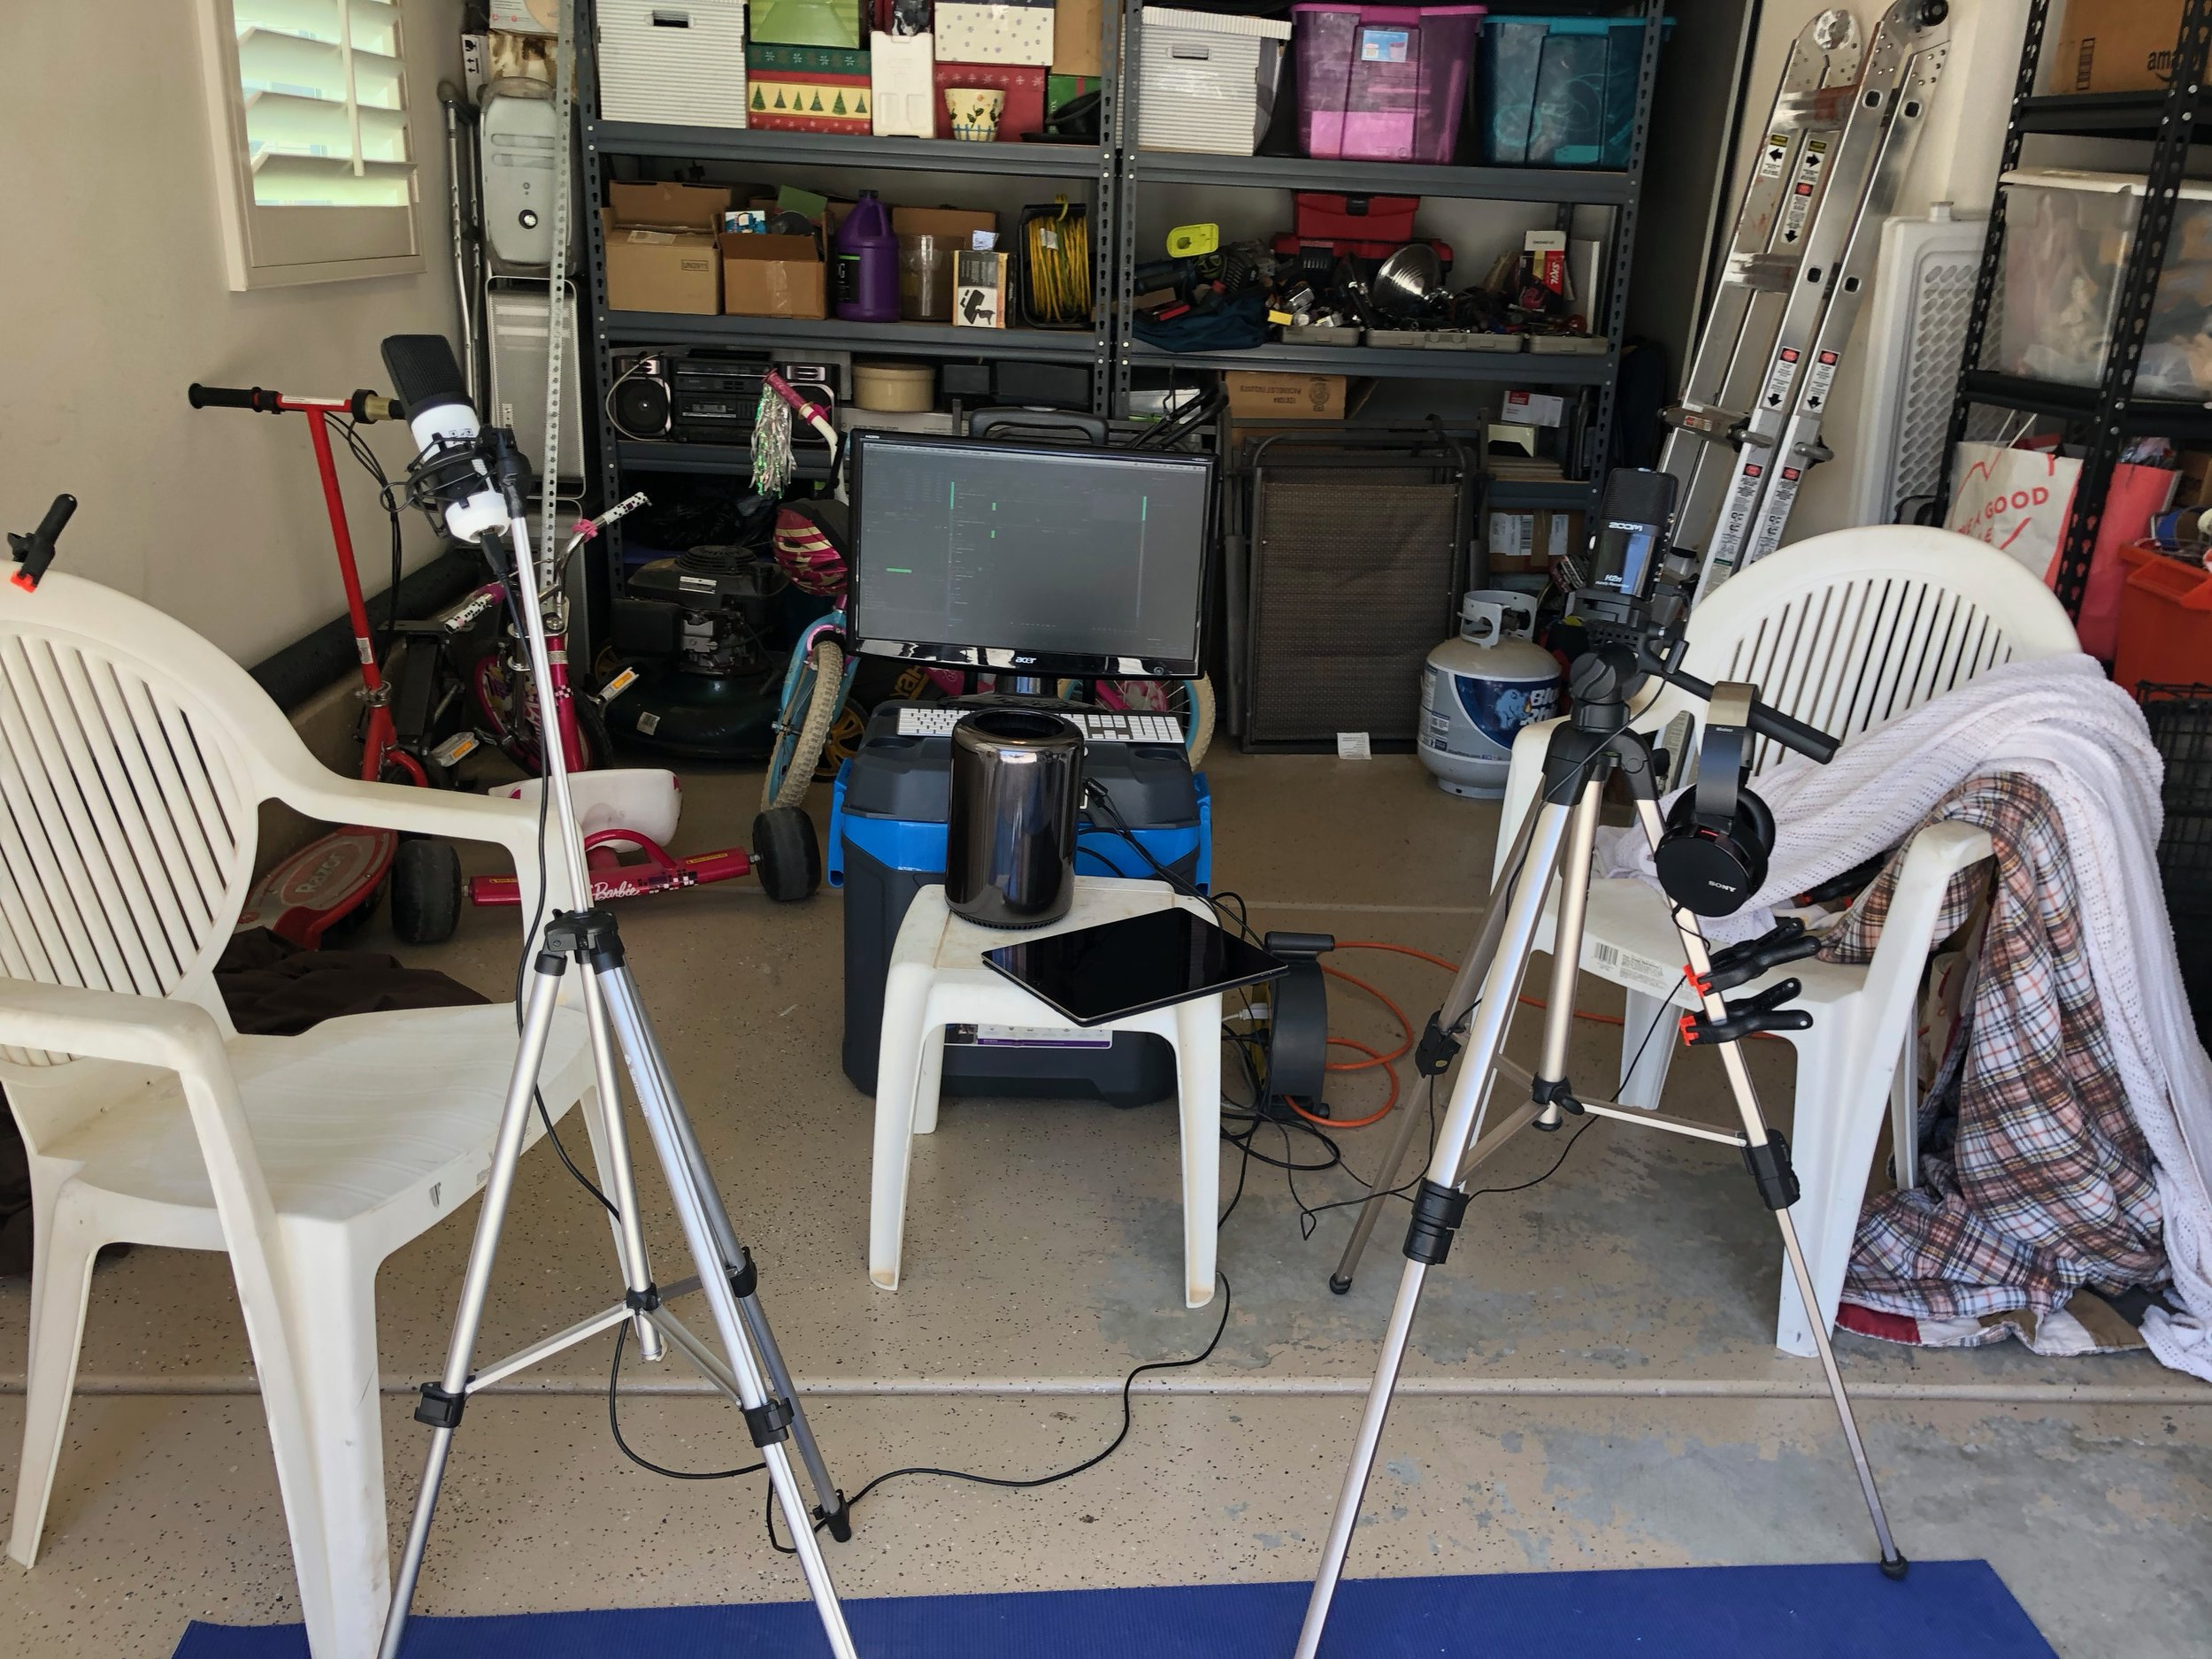 Sweet podcast setup dude! - Just like the old days! Still hiding in the garage.